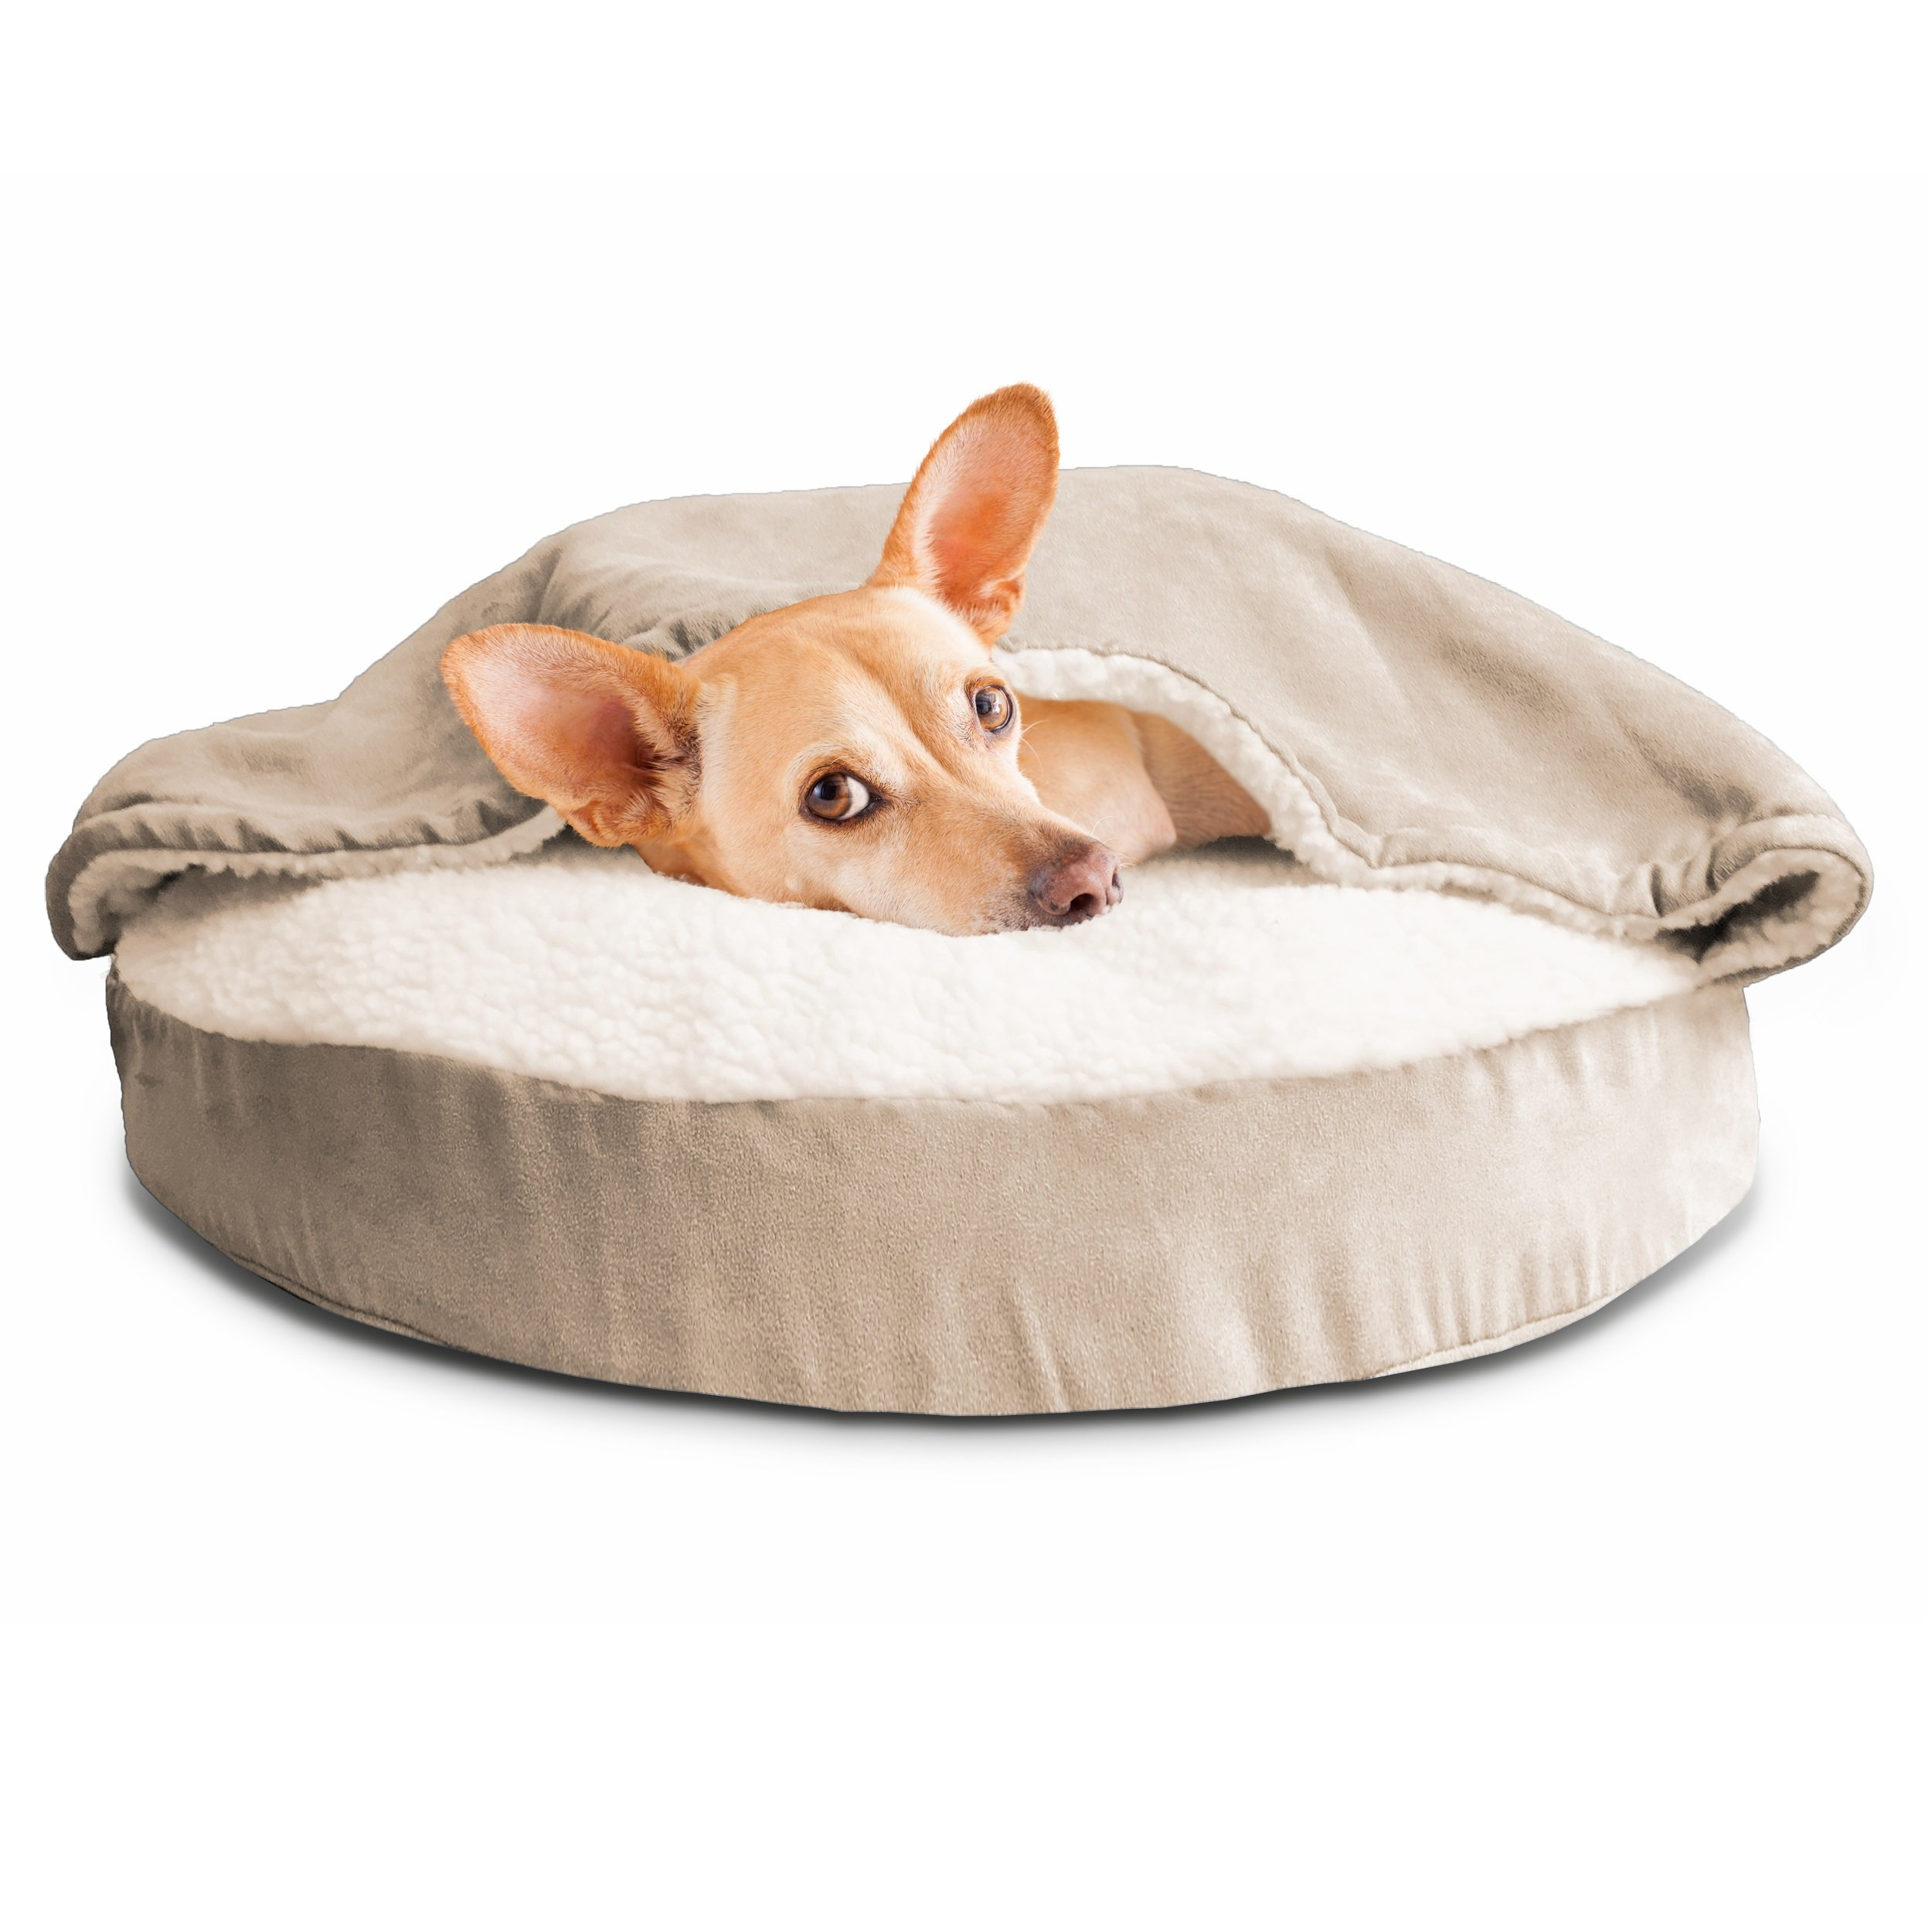 FurHaven Round Snuggery Burrow Pet Bed Cream 26